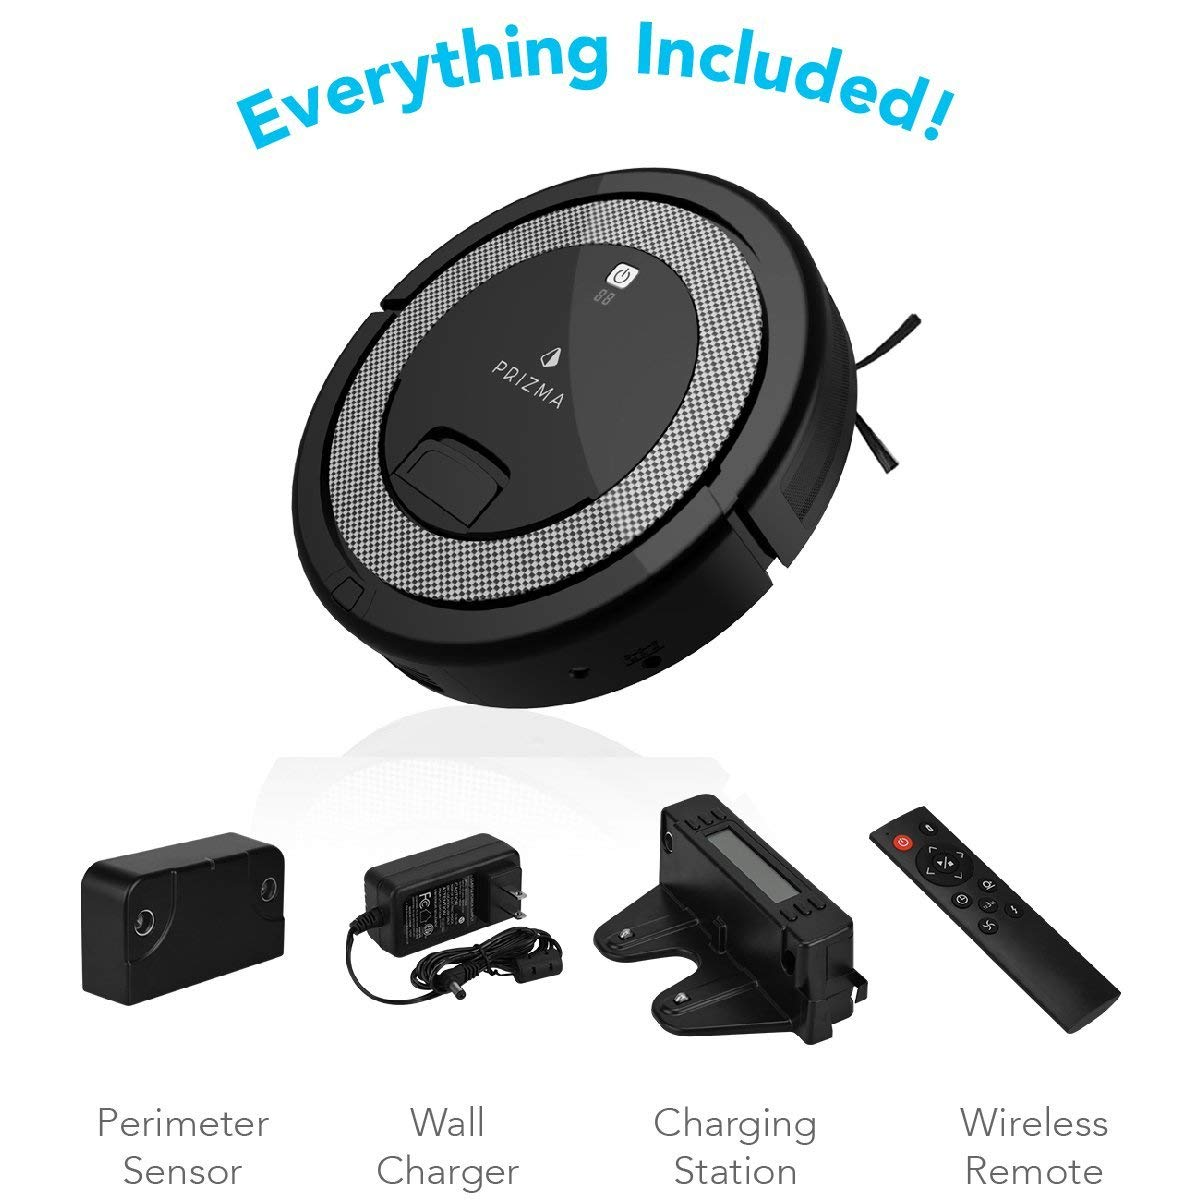 CleanMate QQ6 - Prizma Edition Robot Vacuum Cleaner with Remote Control, Smart Scheduler, Drop and Obstacle Sensor, Multi-Pattern Cleaning, and Self-Charging for Carpet and Hard Floor (Black) by CleanMate (Image #4)